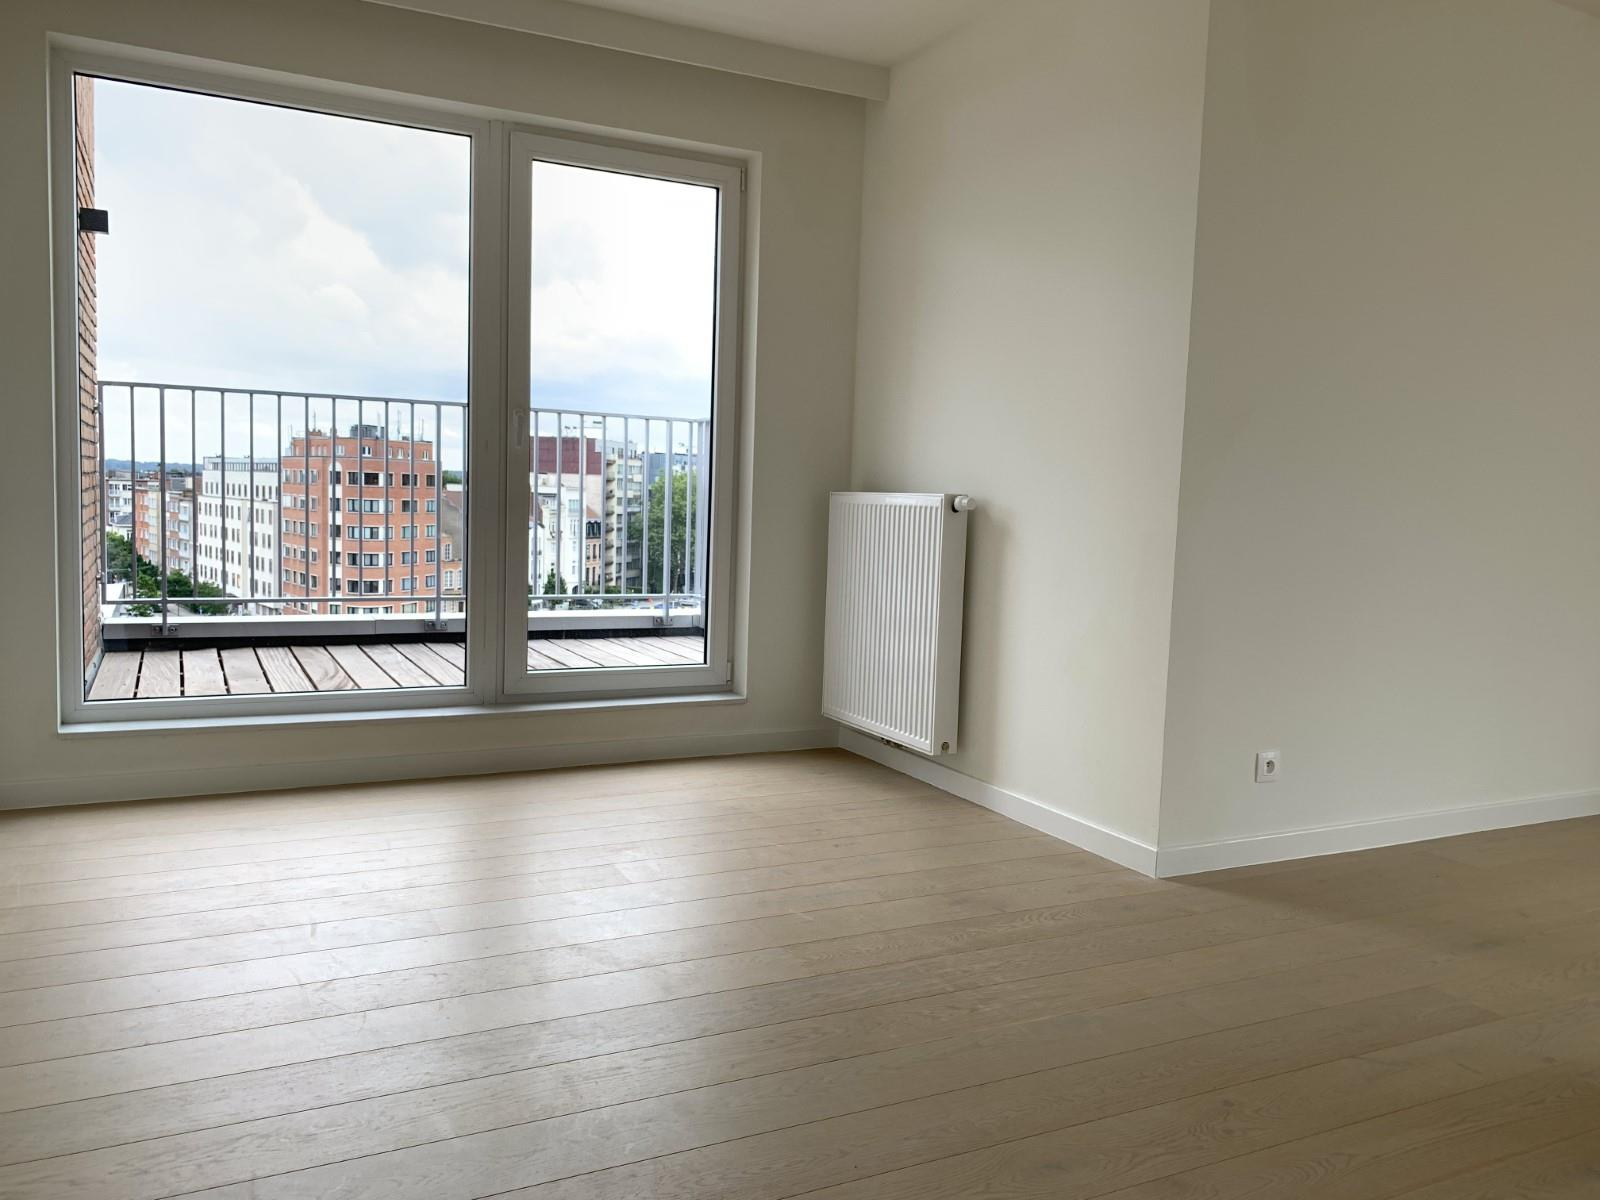 Appartement exceptionnel - Schaerbeek - #3875201-3